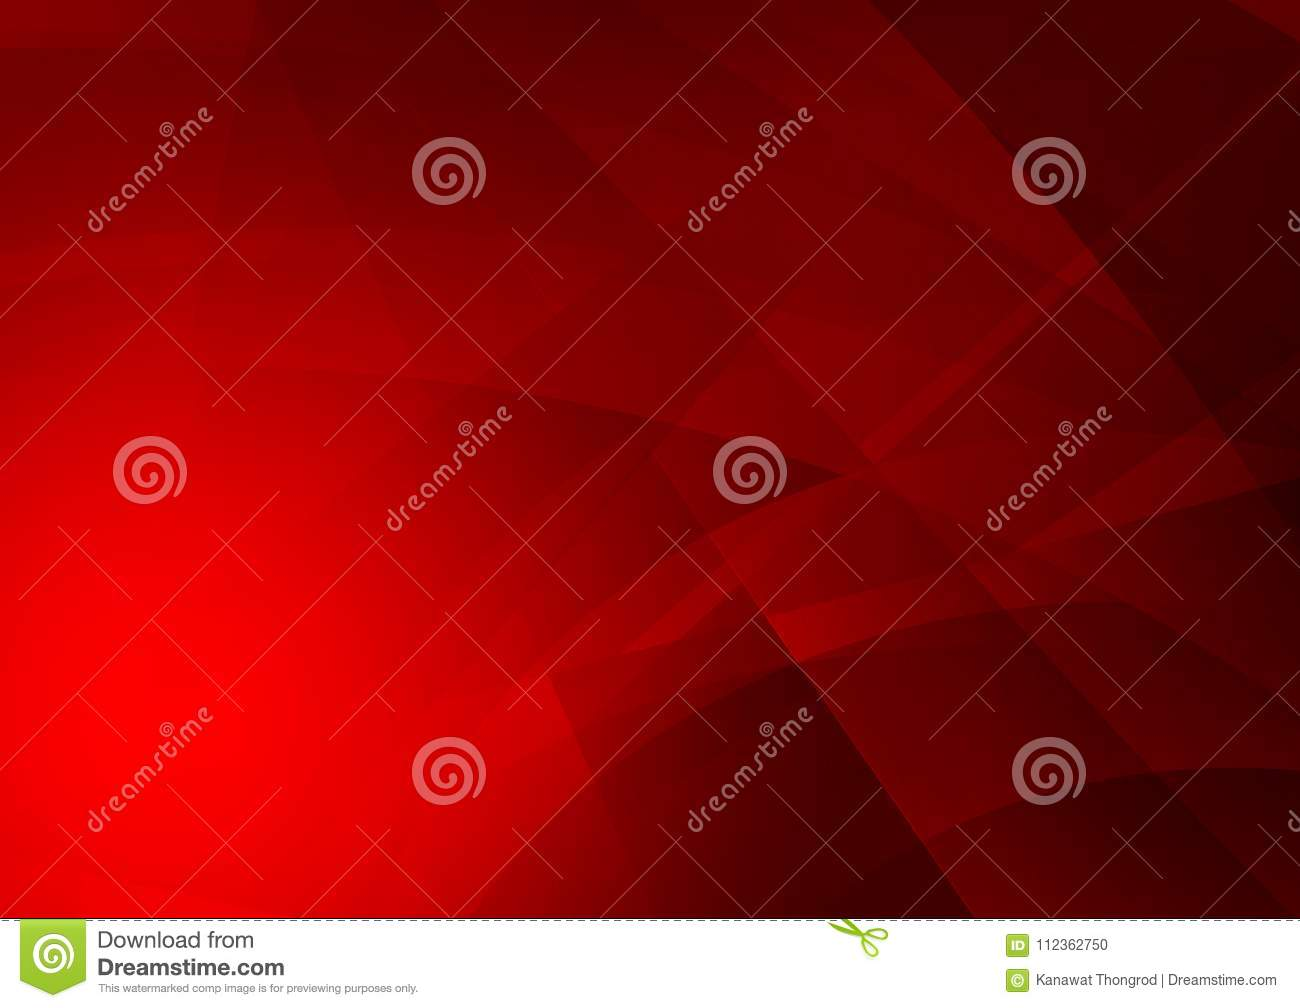 Red color geometric abstract background, Graphic design